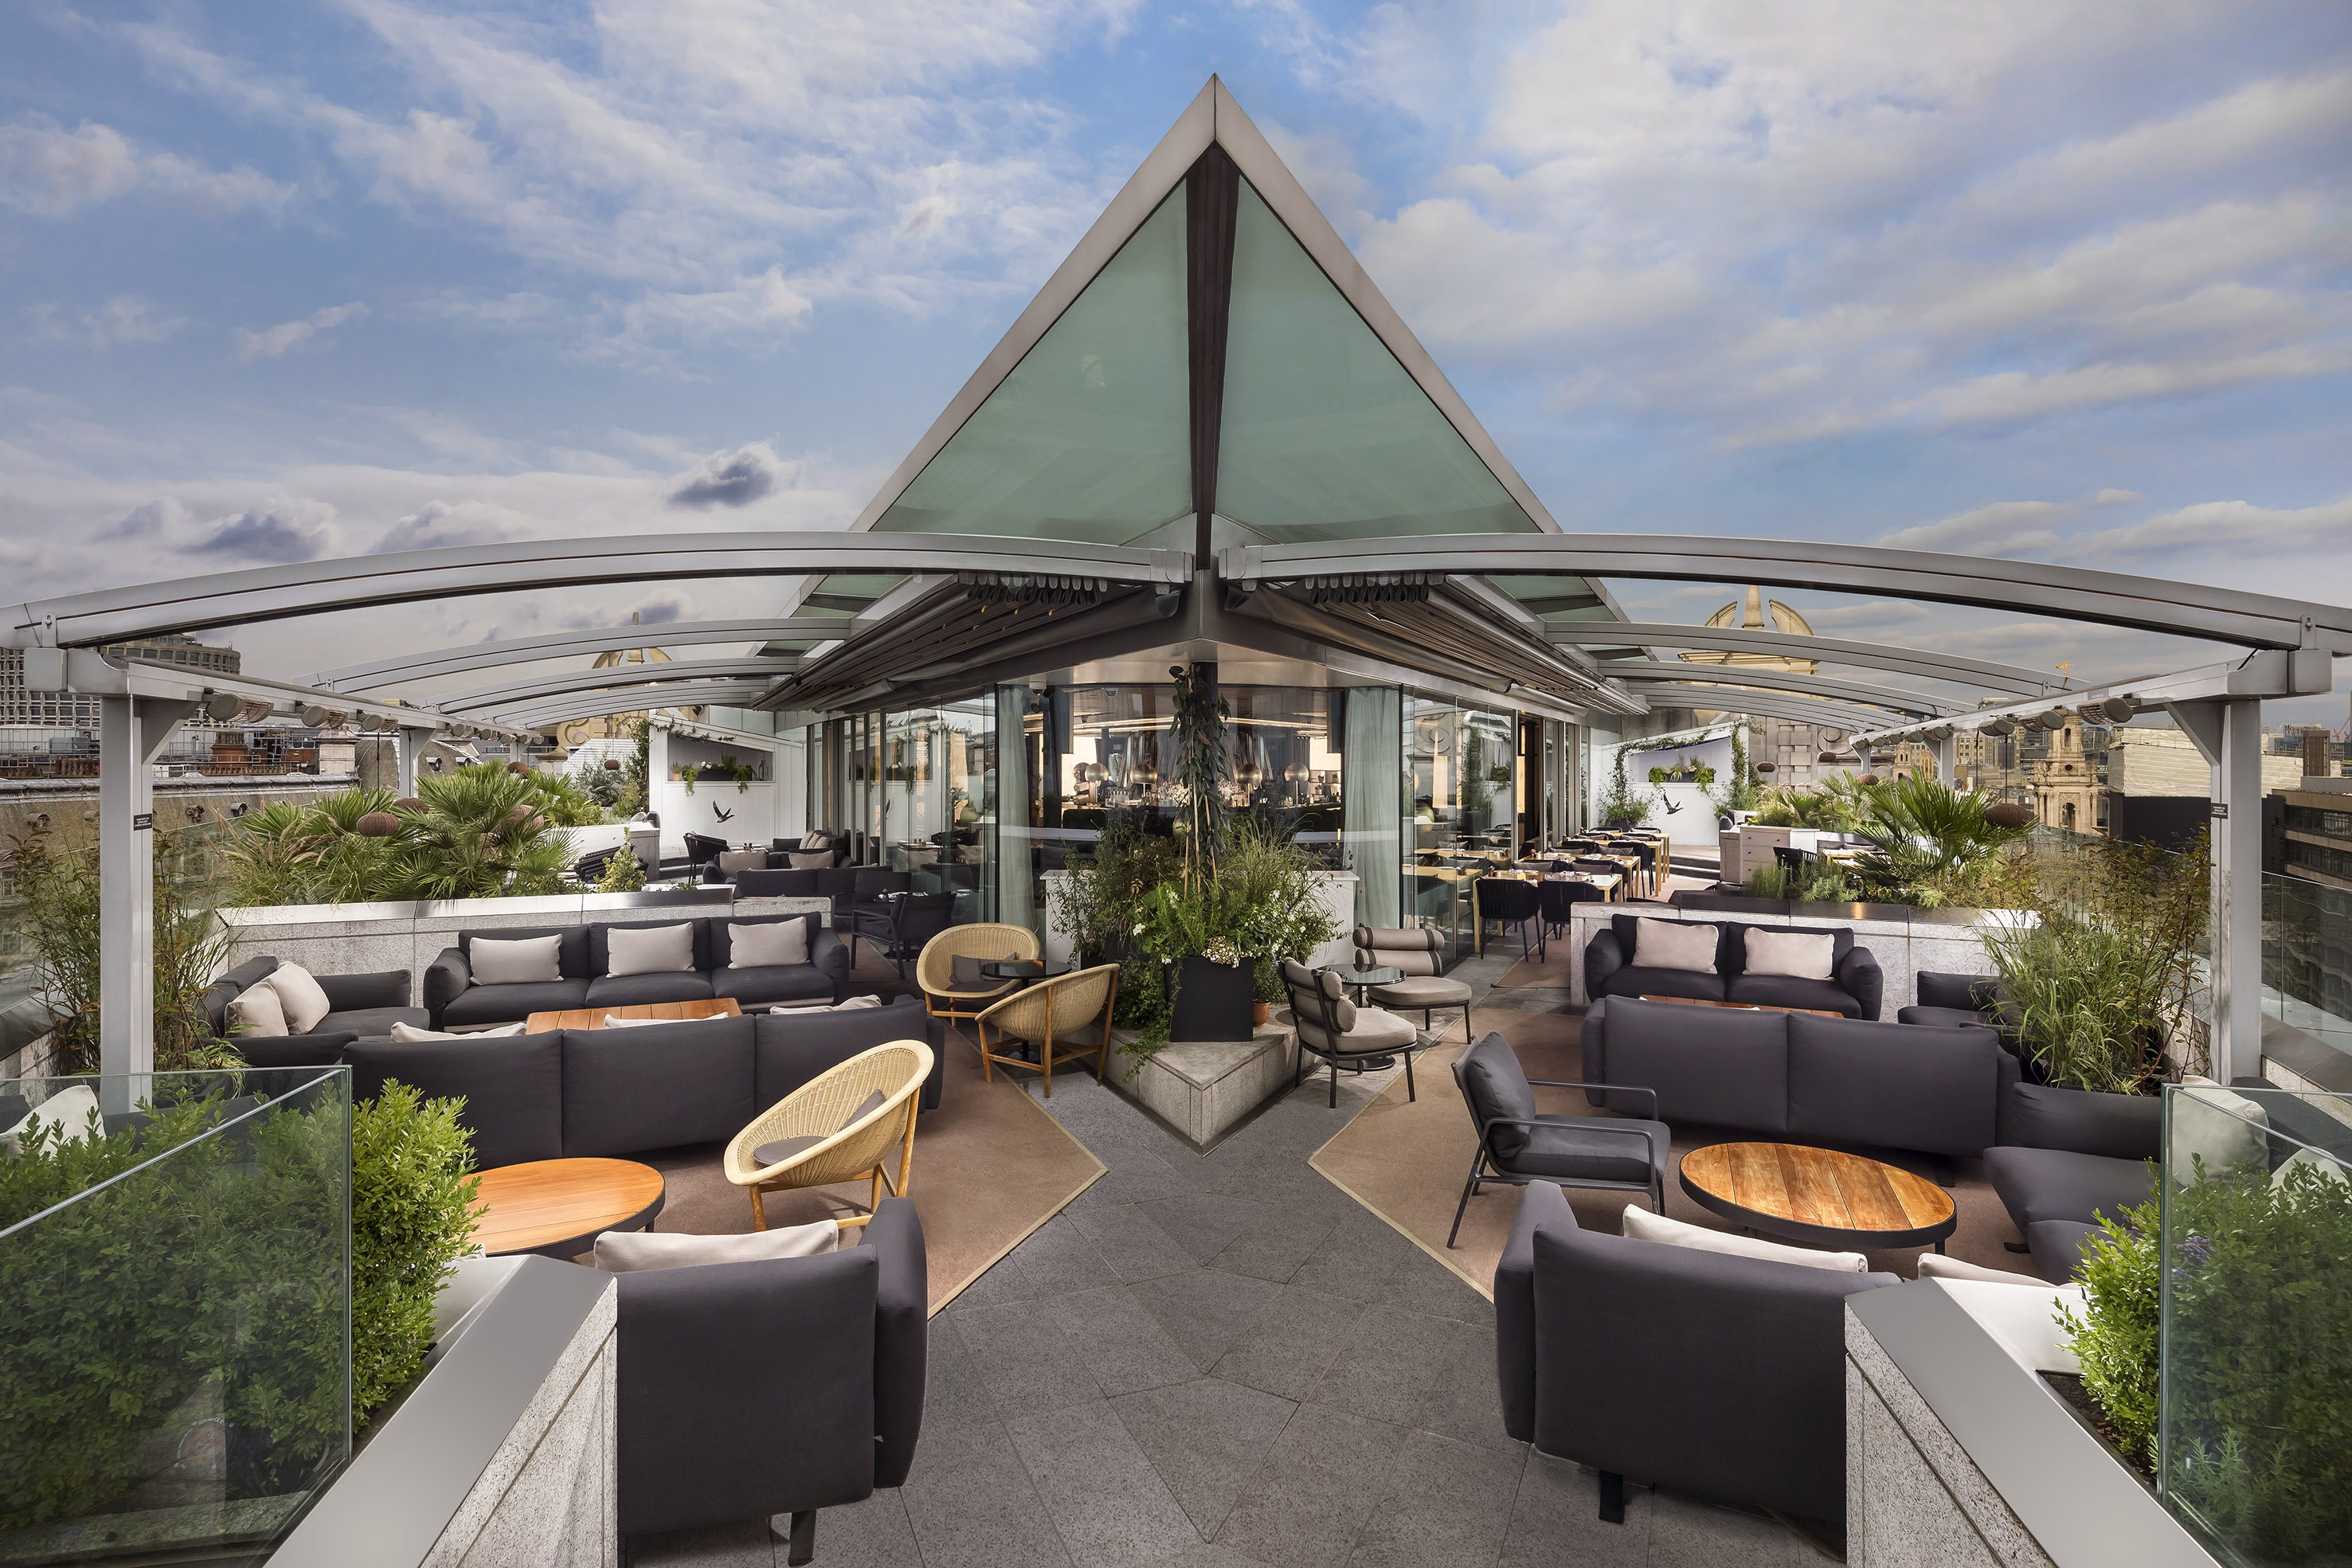 New Year S Eve At Radio Rooftop Covent Garden London New Years Eve Party Reviews Designmynight